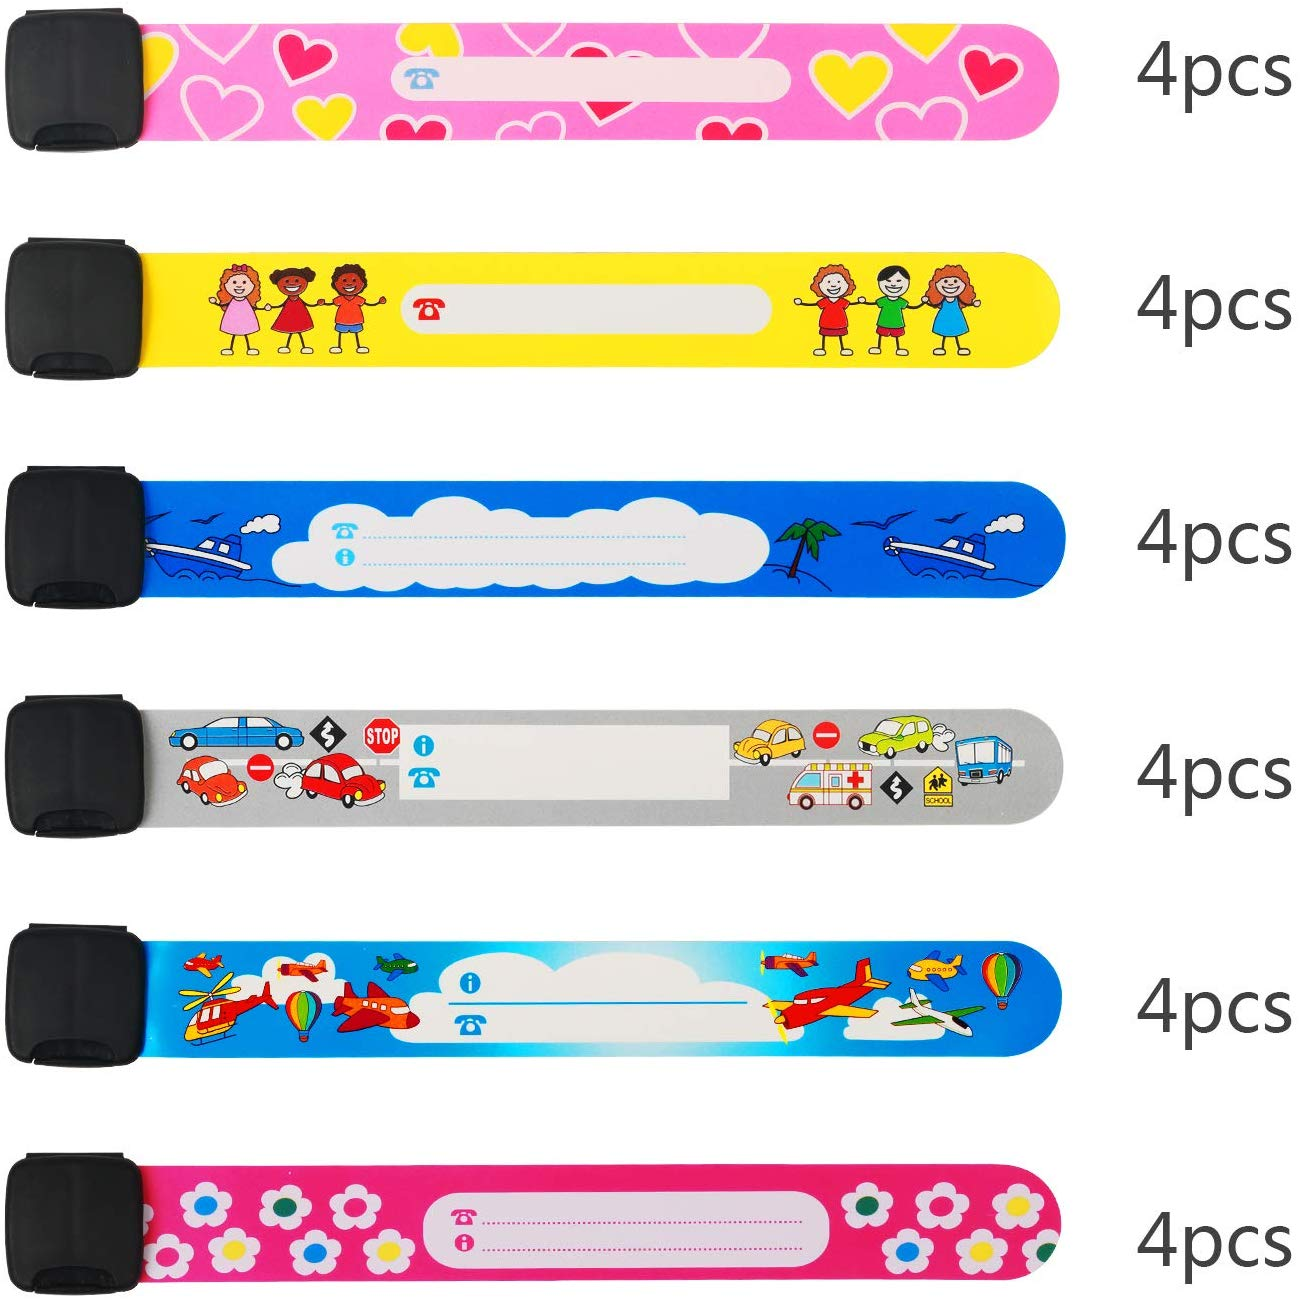 Metable 24 PCS Child Waterproof Emergency Bracelet Wrist Name Bands For Kids Baby Anti Lost Travel Event Outdoor Activity